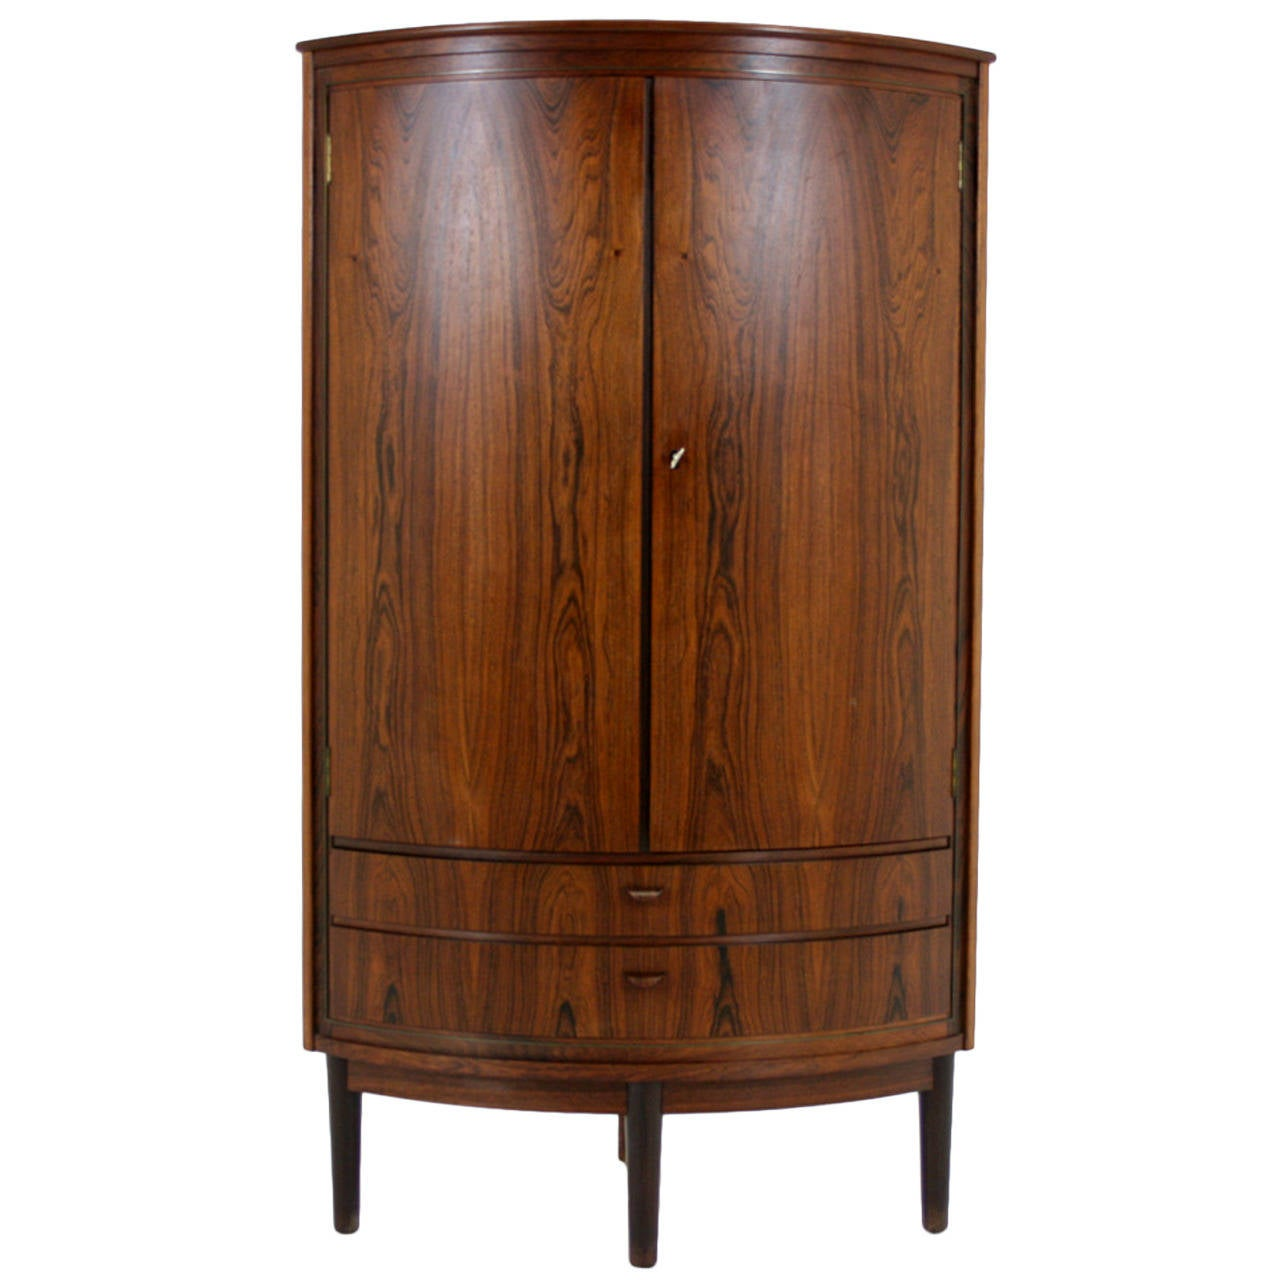 Danish Mid Century Modern Rosewood Corner Cabinet Bar Cupboard For Sale